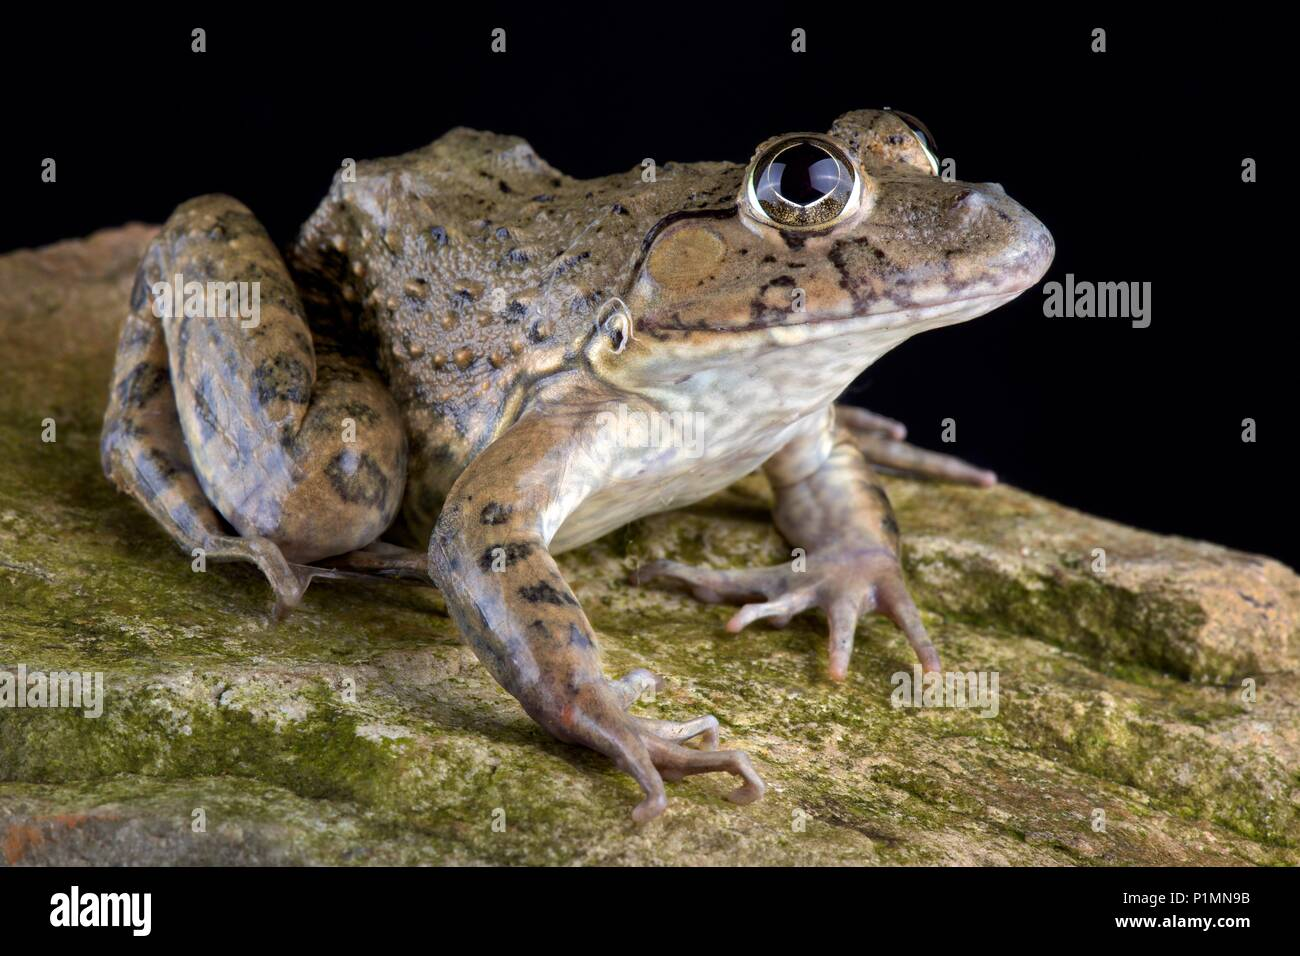 This species is widespread from central, southern and south-western China including Taiwan, Hong Kong and Macau to Myanmar through Thailand, Lao Peopl - Stock Image